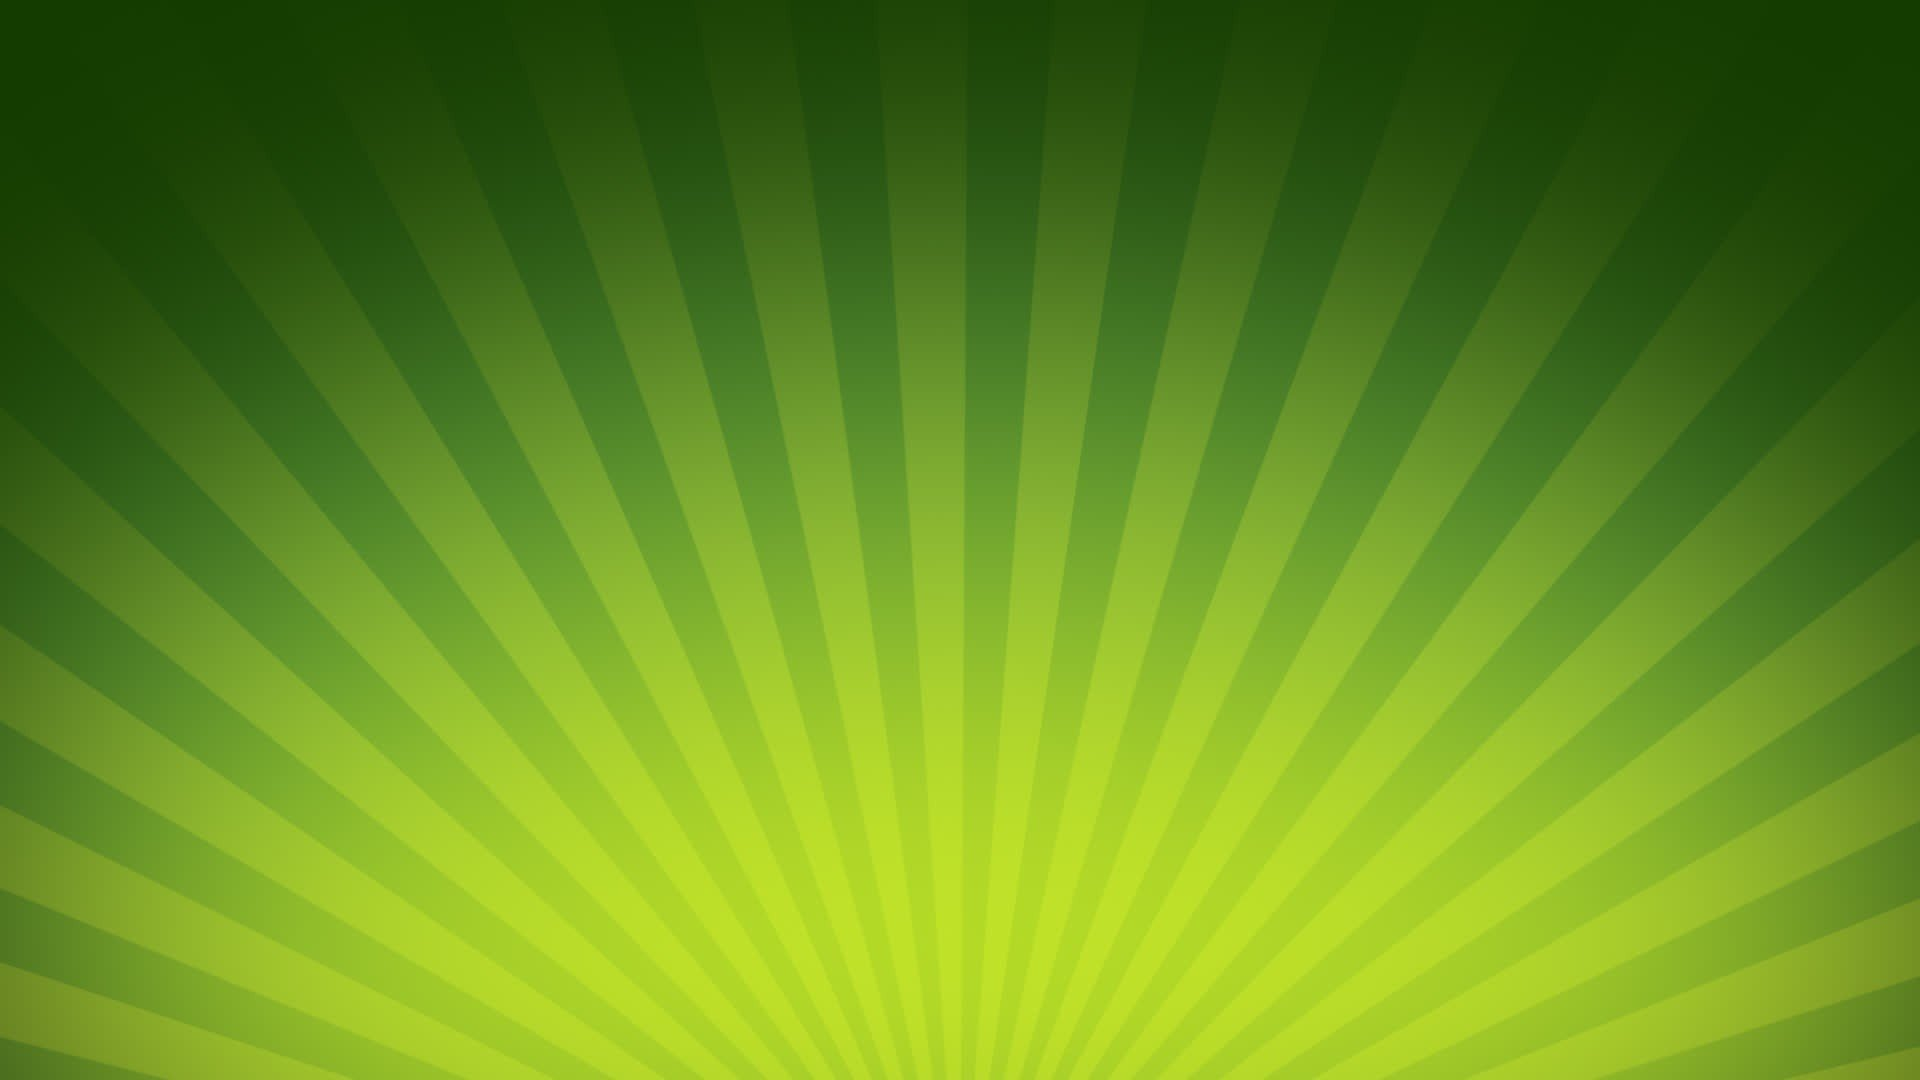 green  radial hd wallpapers    desktop and mobile images